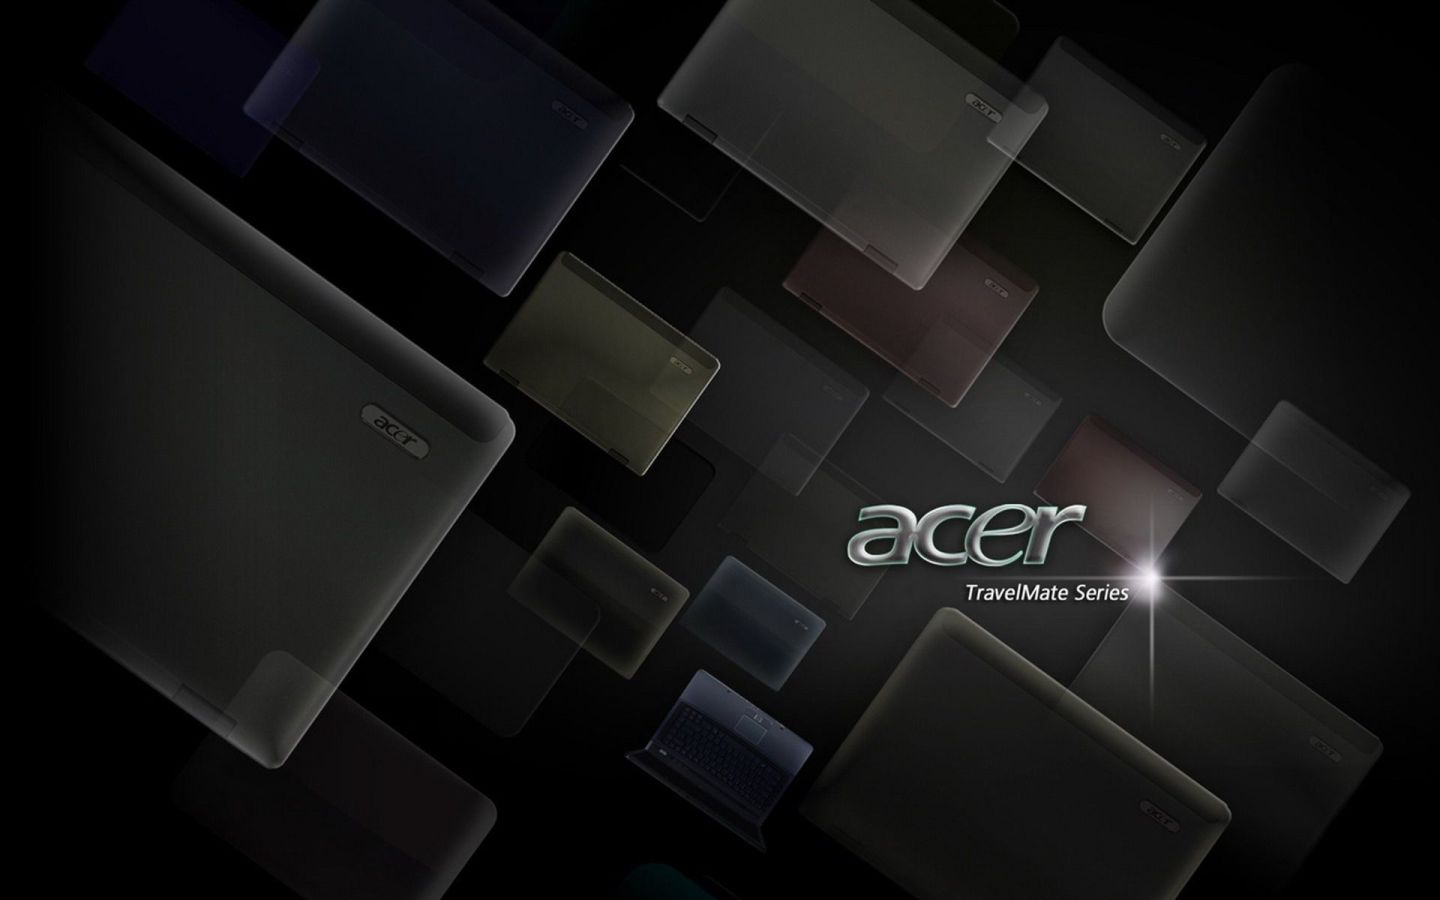 Acer Black Logo Brand Wallpaper Widescreen List Wallpapers